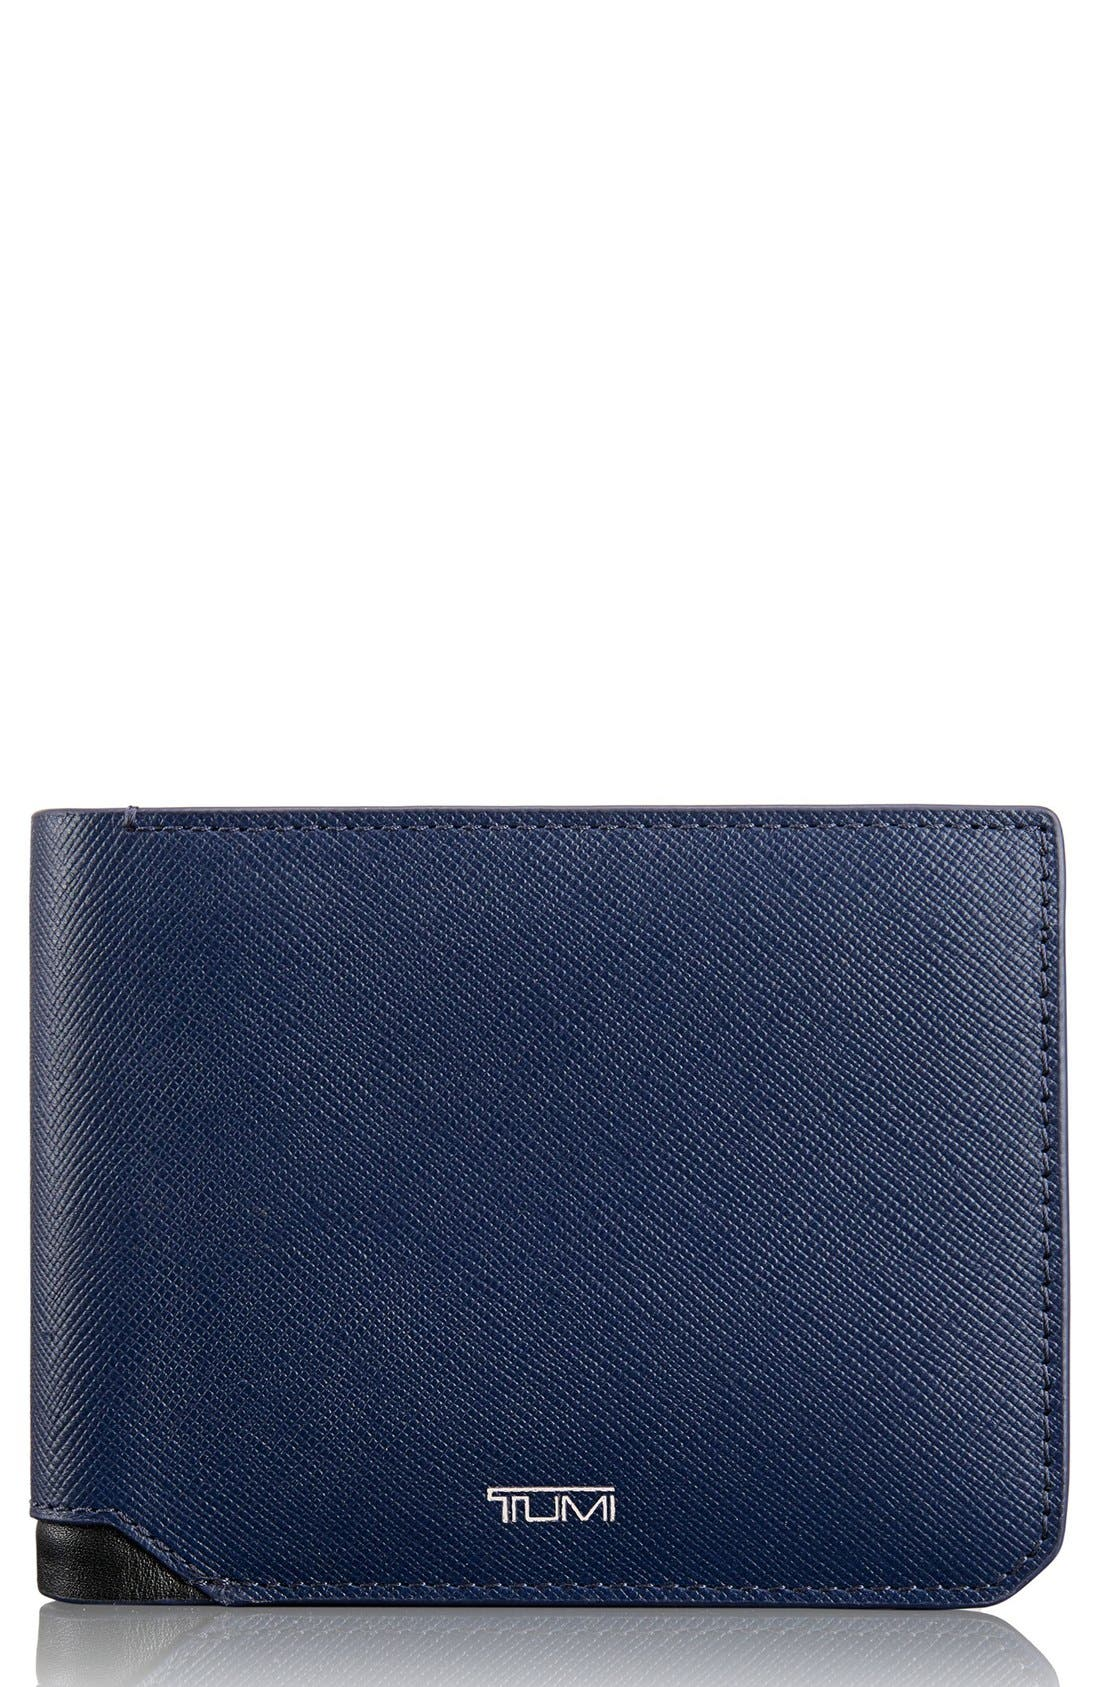 Main Image - Tumi Leather Wallet